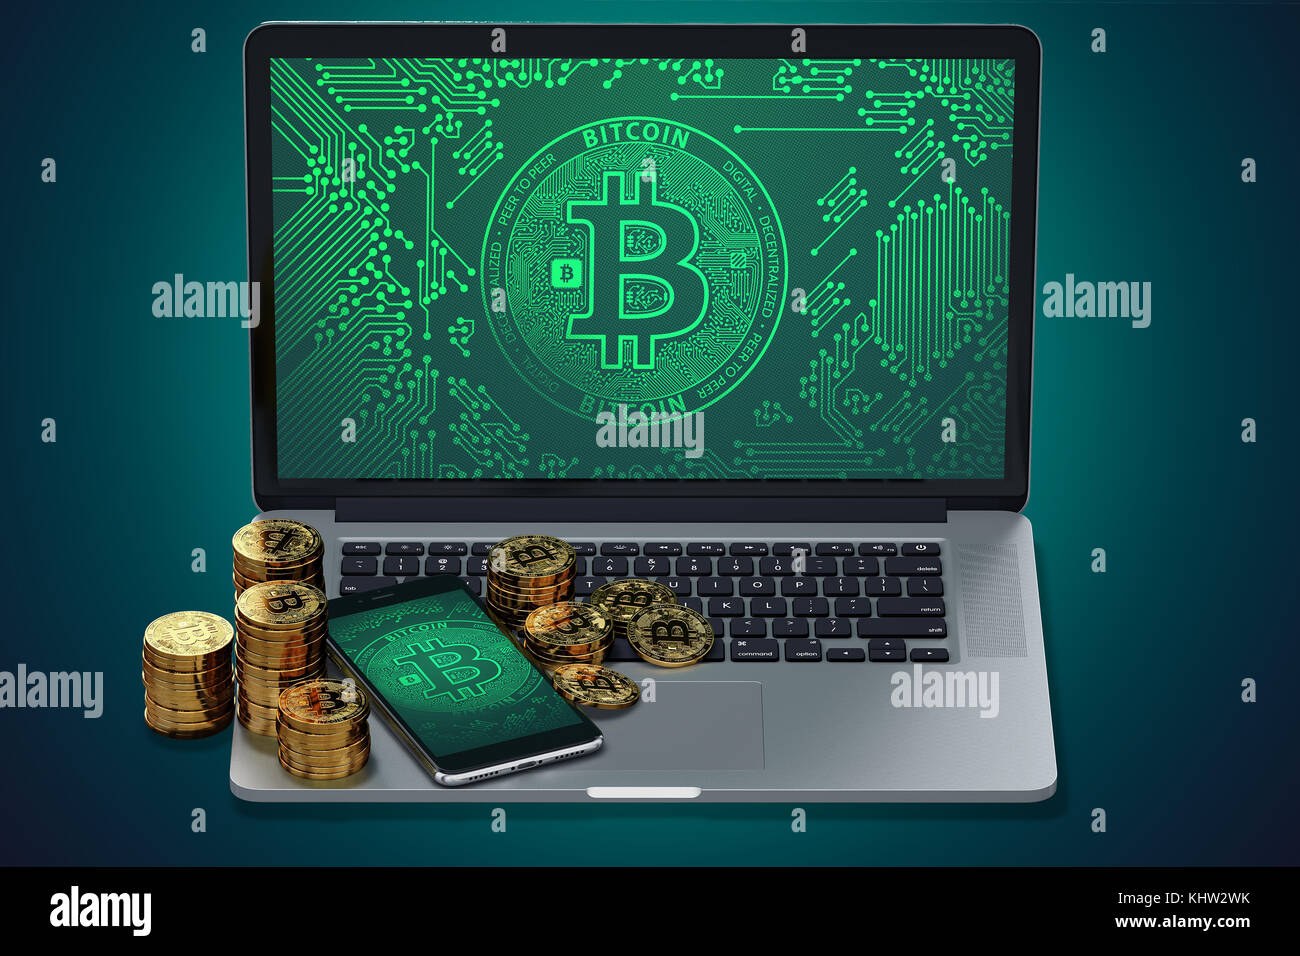 Computer and smart phone with bitcoin symbol on screen and piles computer and smart phone with bitcoin symbol on screen and piles of golden bitcoin bitcoin trading concept 3d rendering buycottarizona Choice Image